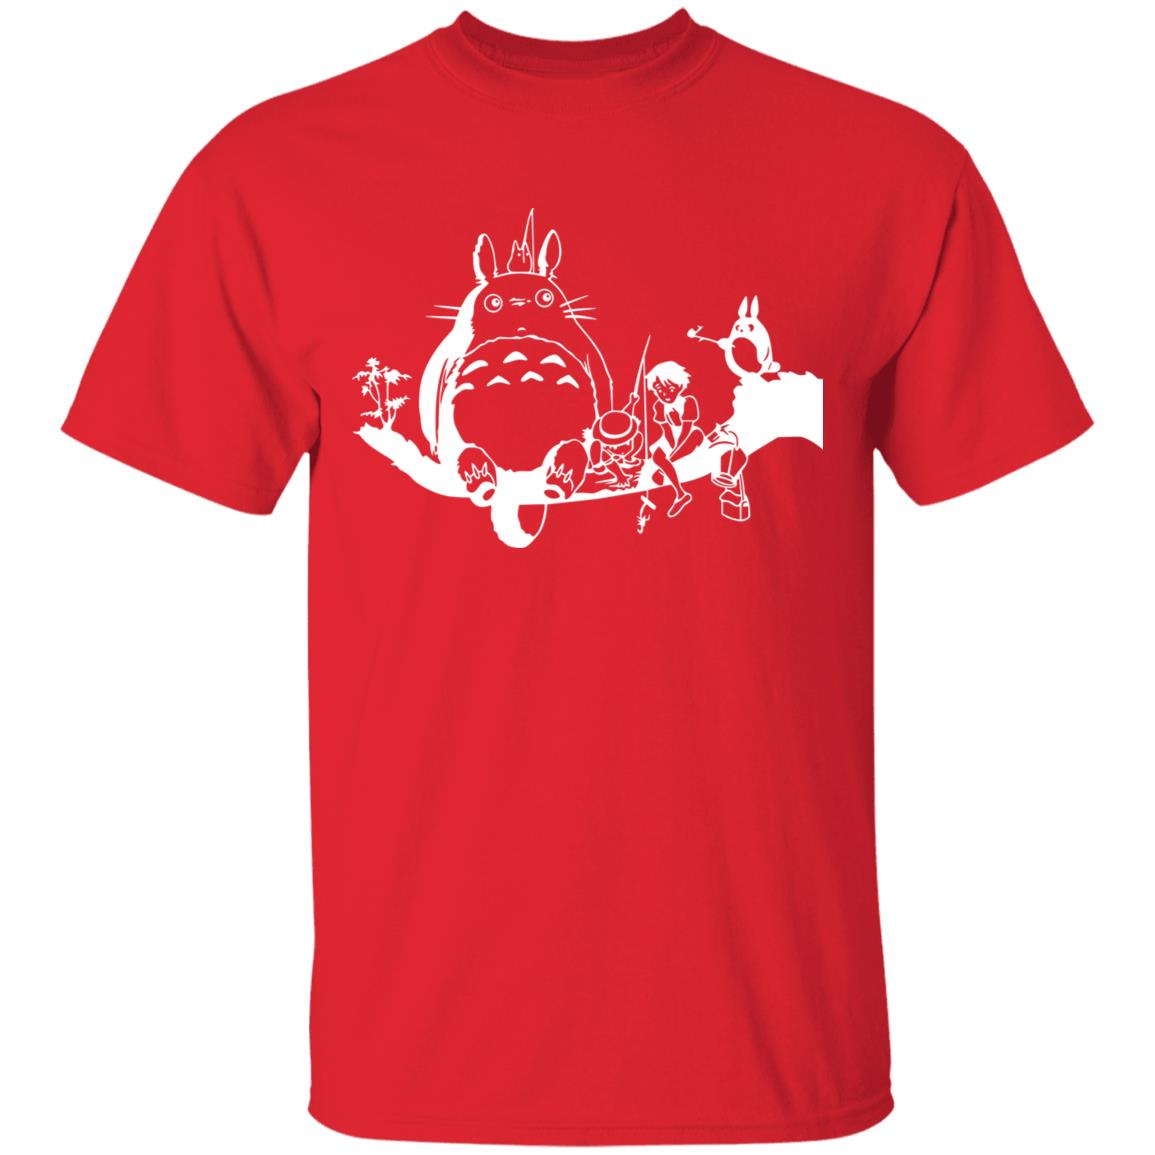 My Neighbor Totoro – Fishing Retro T Shirt